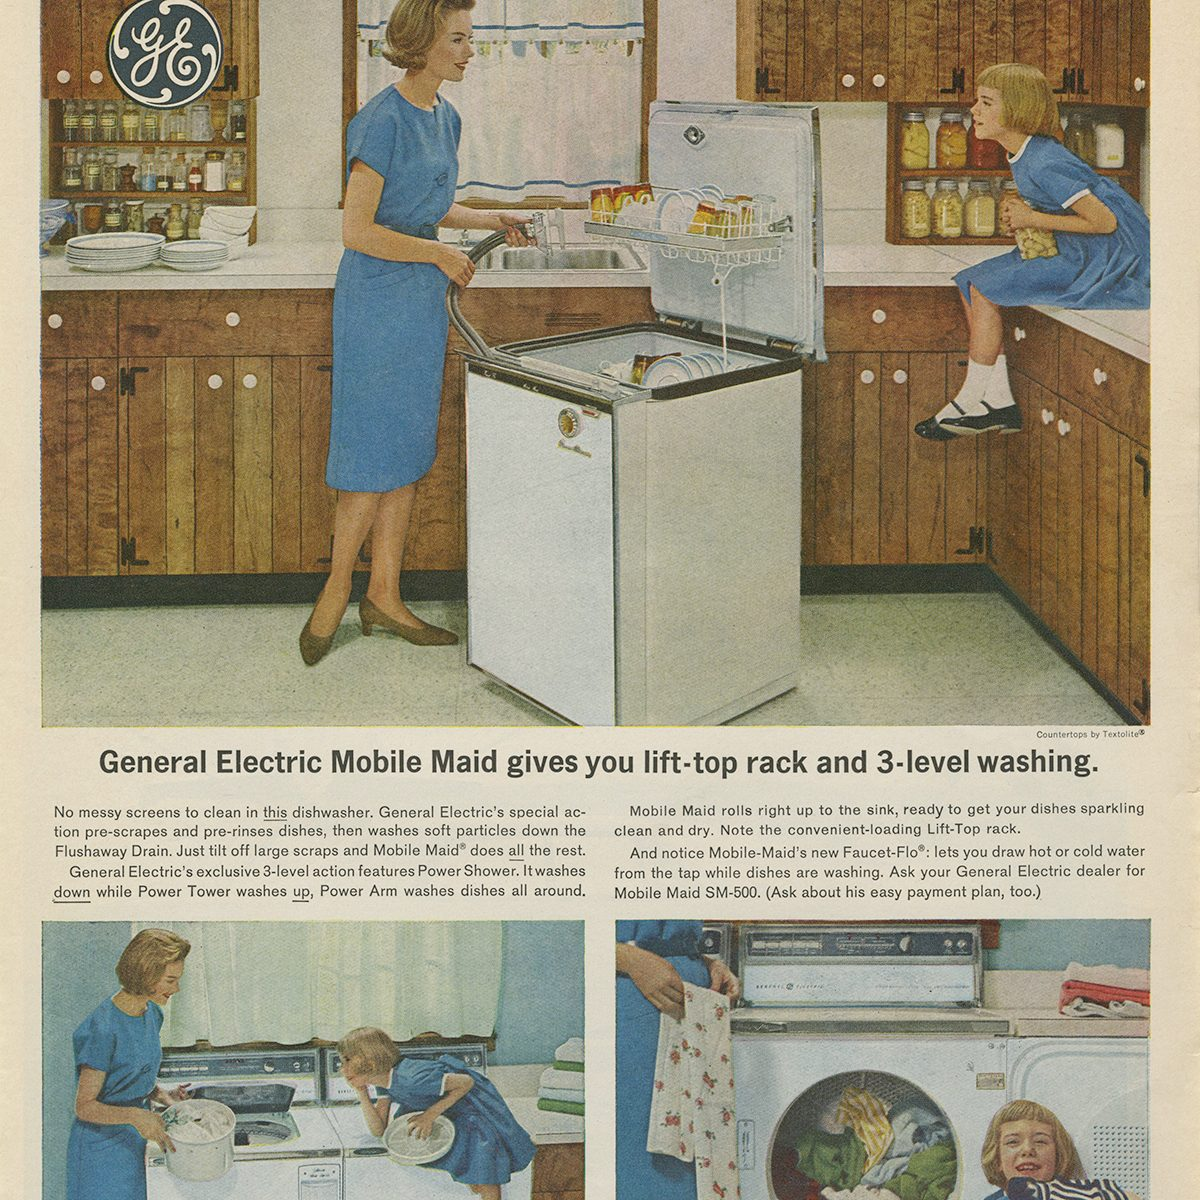 General Electric Mobile Maid Dishwasher